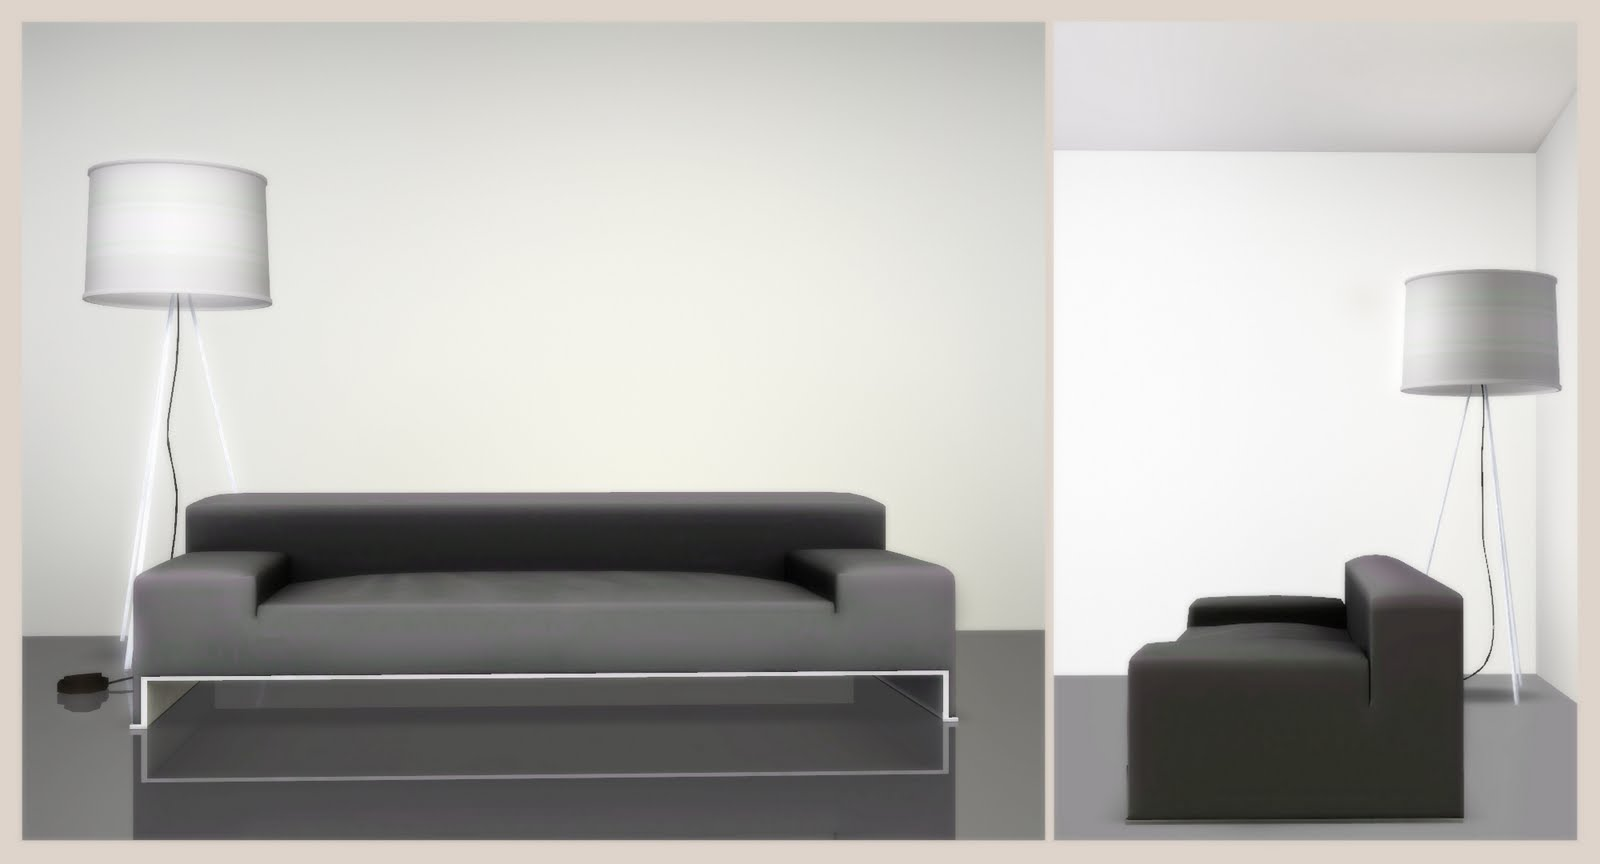 Very Impressive portraiture of My Sims 3 Blog: Bookshelves & Sofa Set by Nicky with #6F6C5C color and 1600x864 pixels